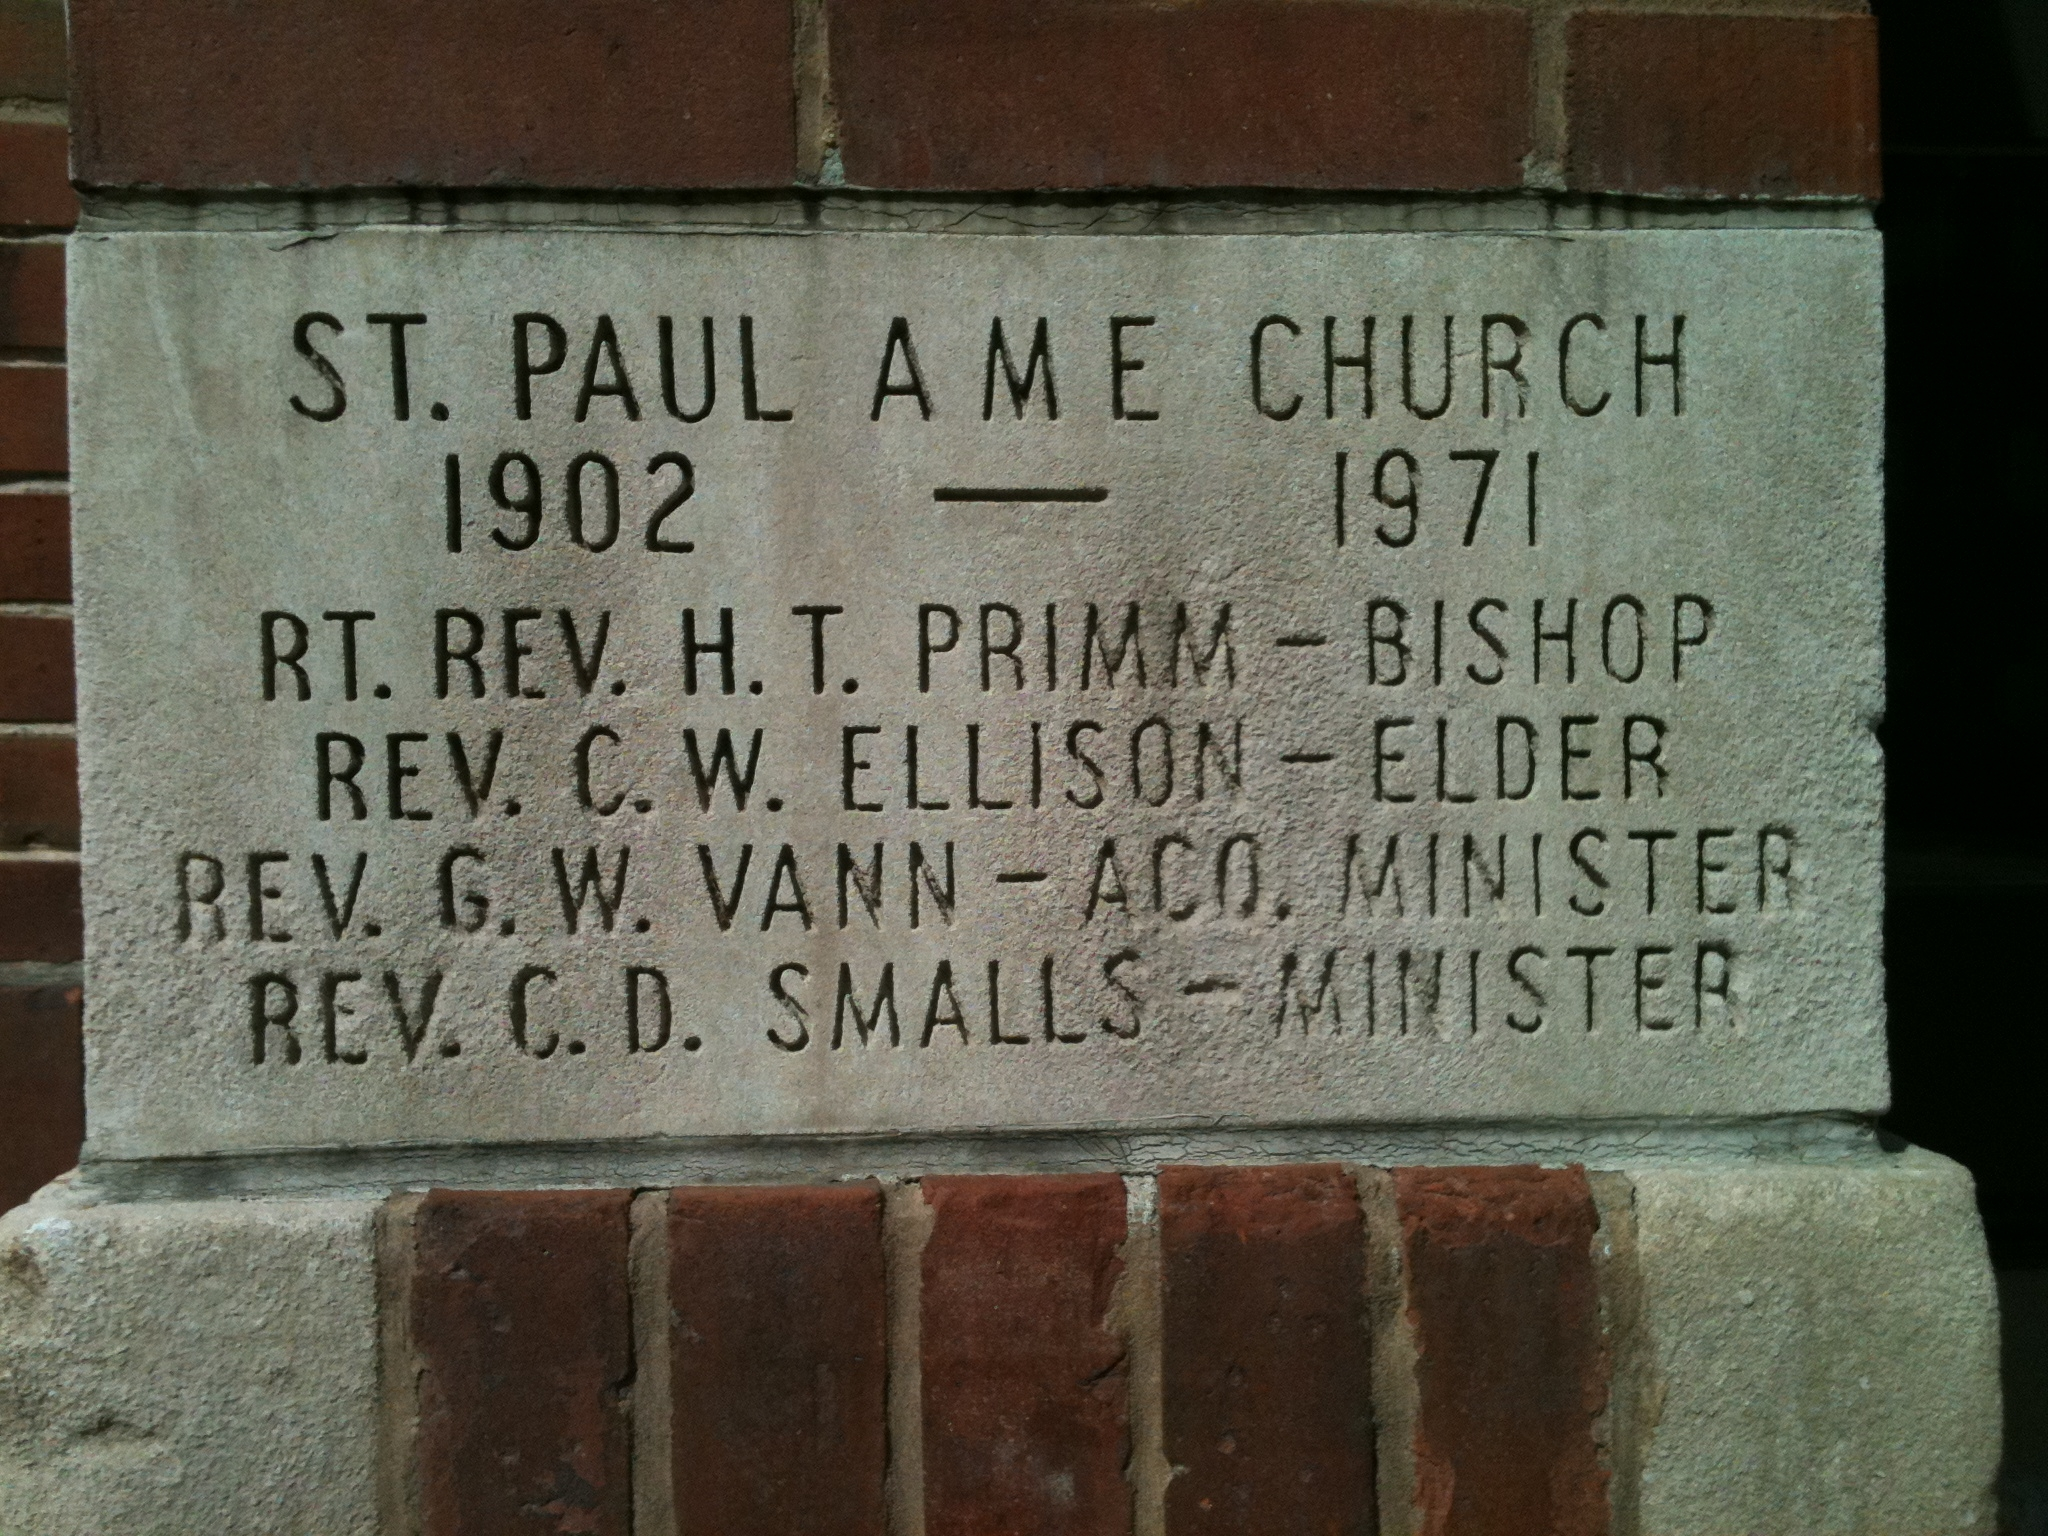 Cornerstone from the St. Paul AME Church